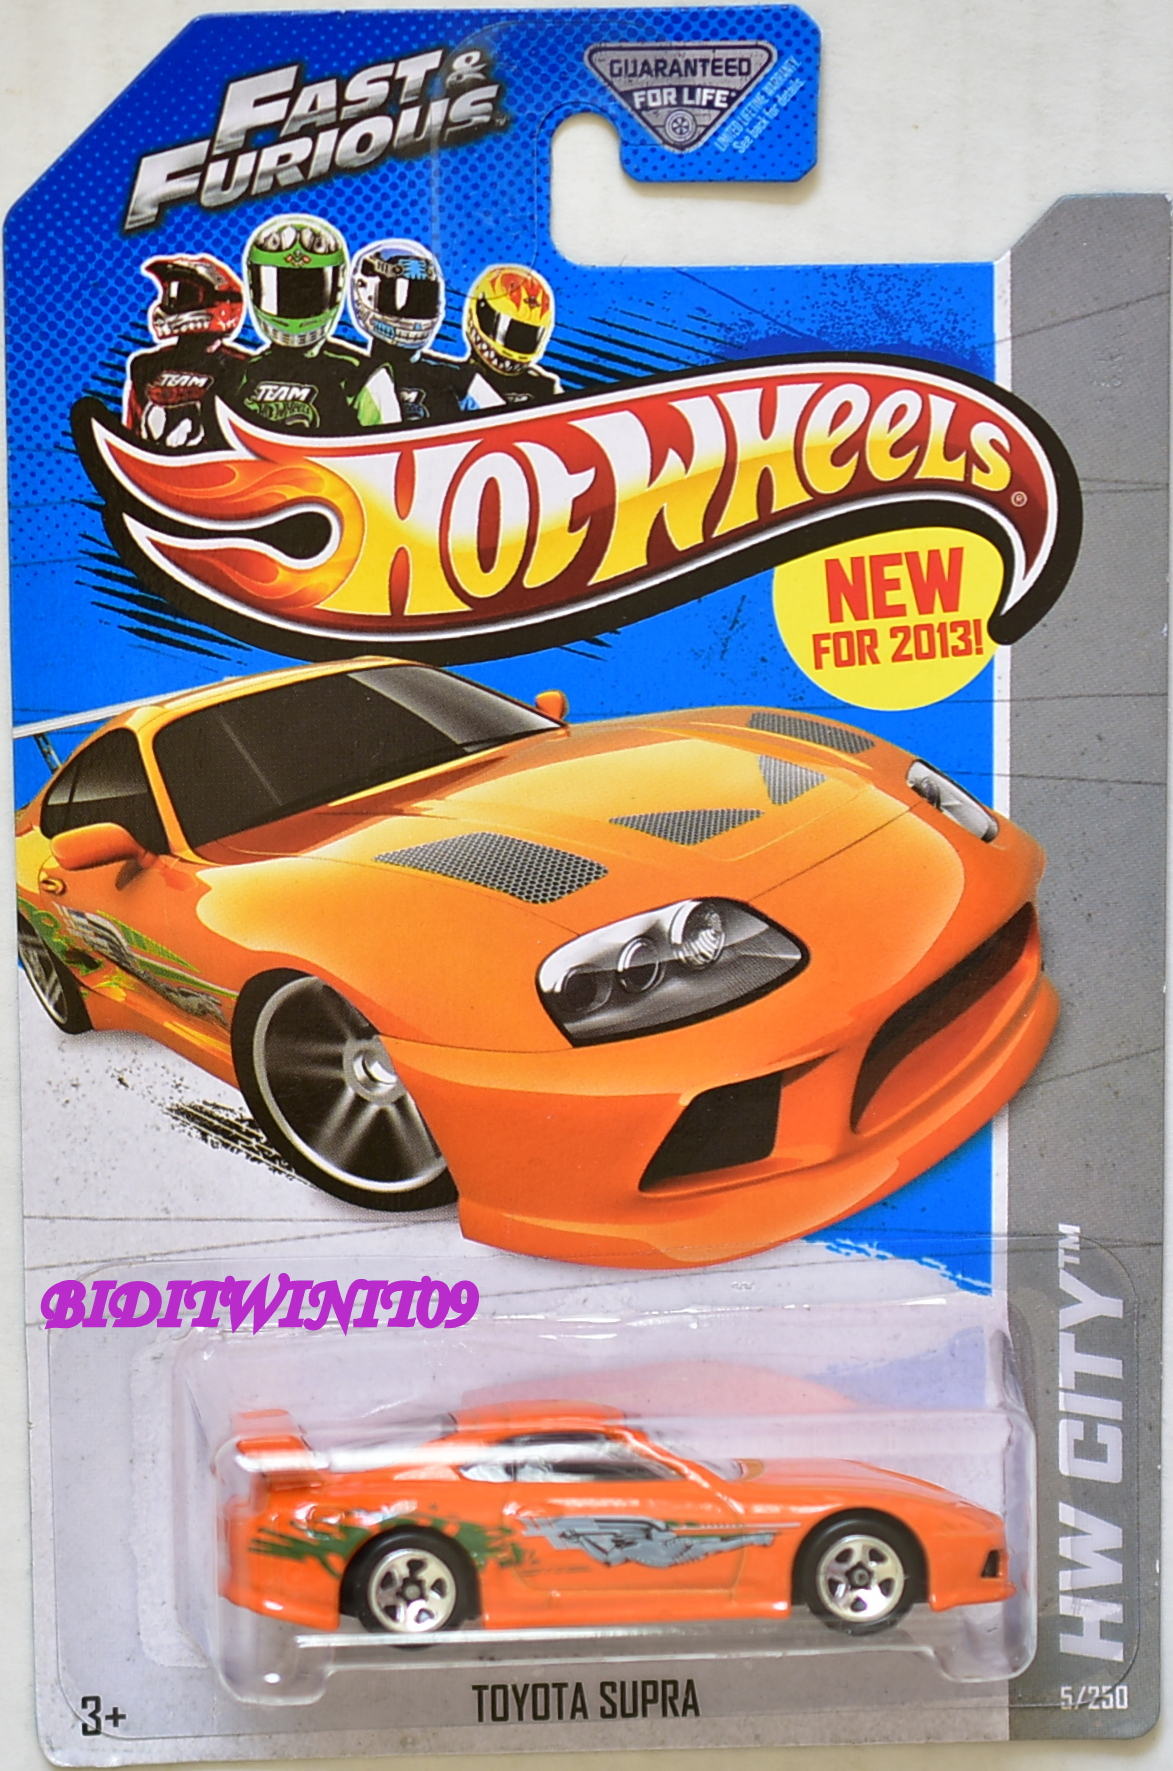 HOT WHEELS 2013 HW CITY - STREET POWER TOYOTA SUPRA ORANGE